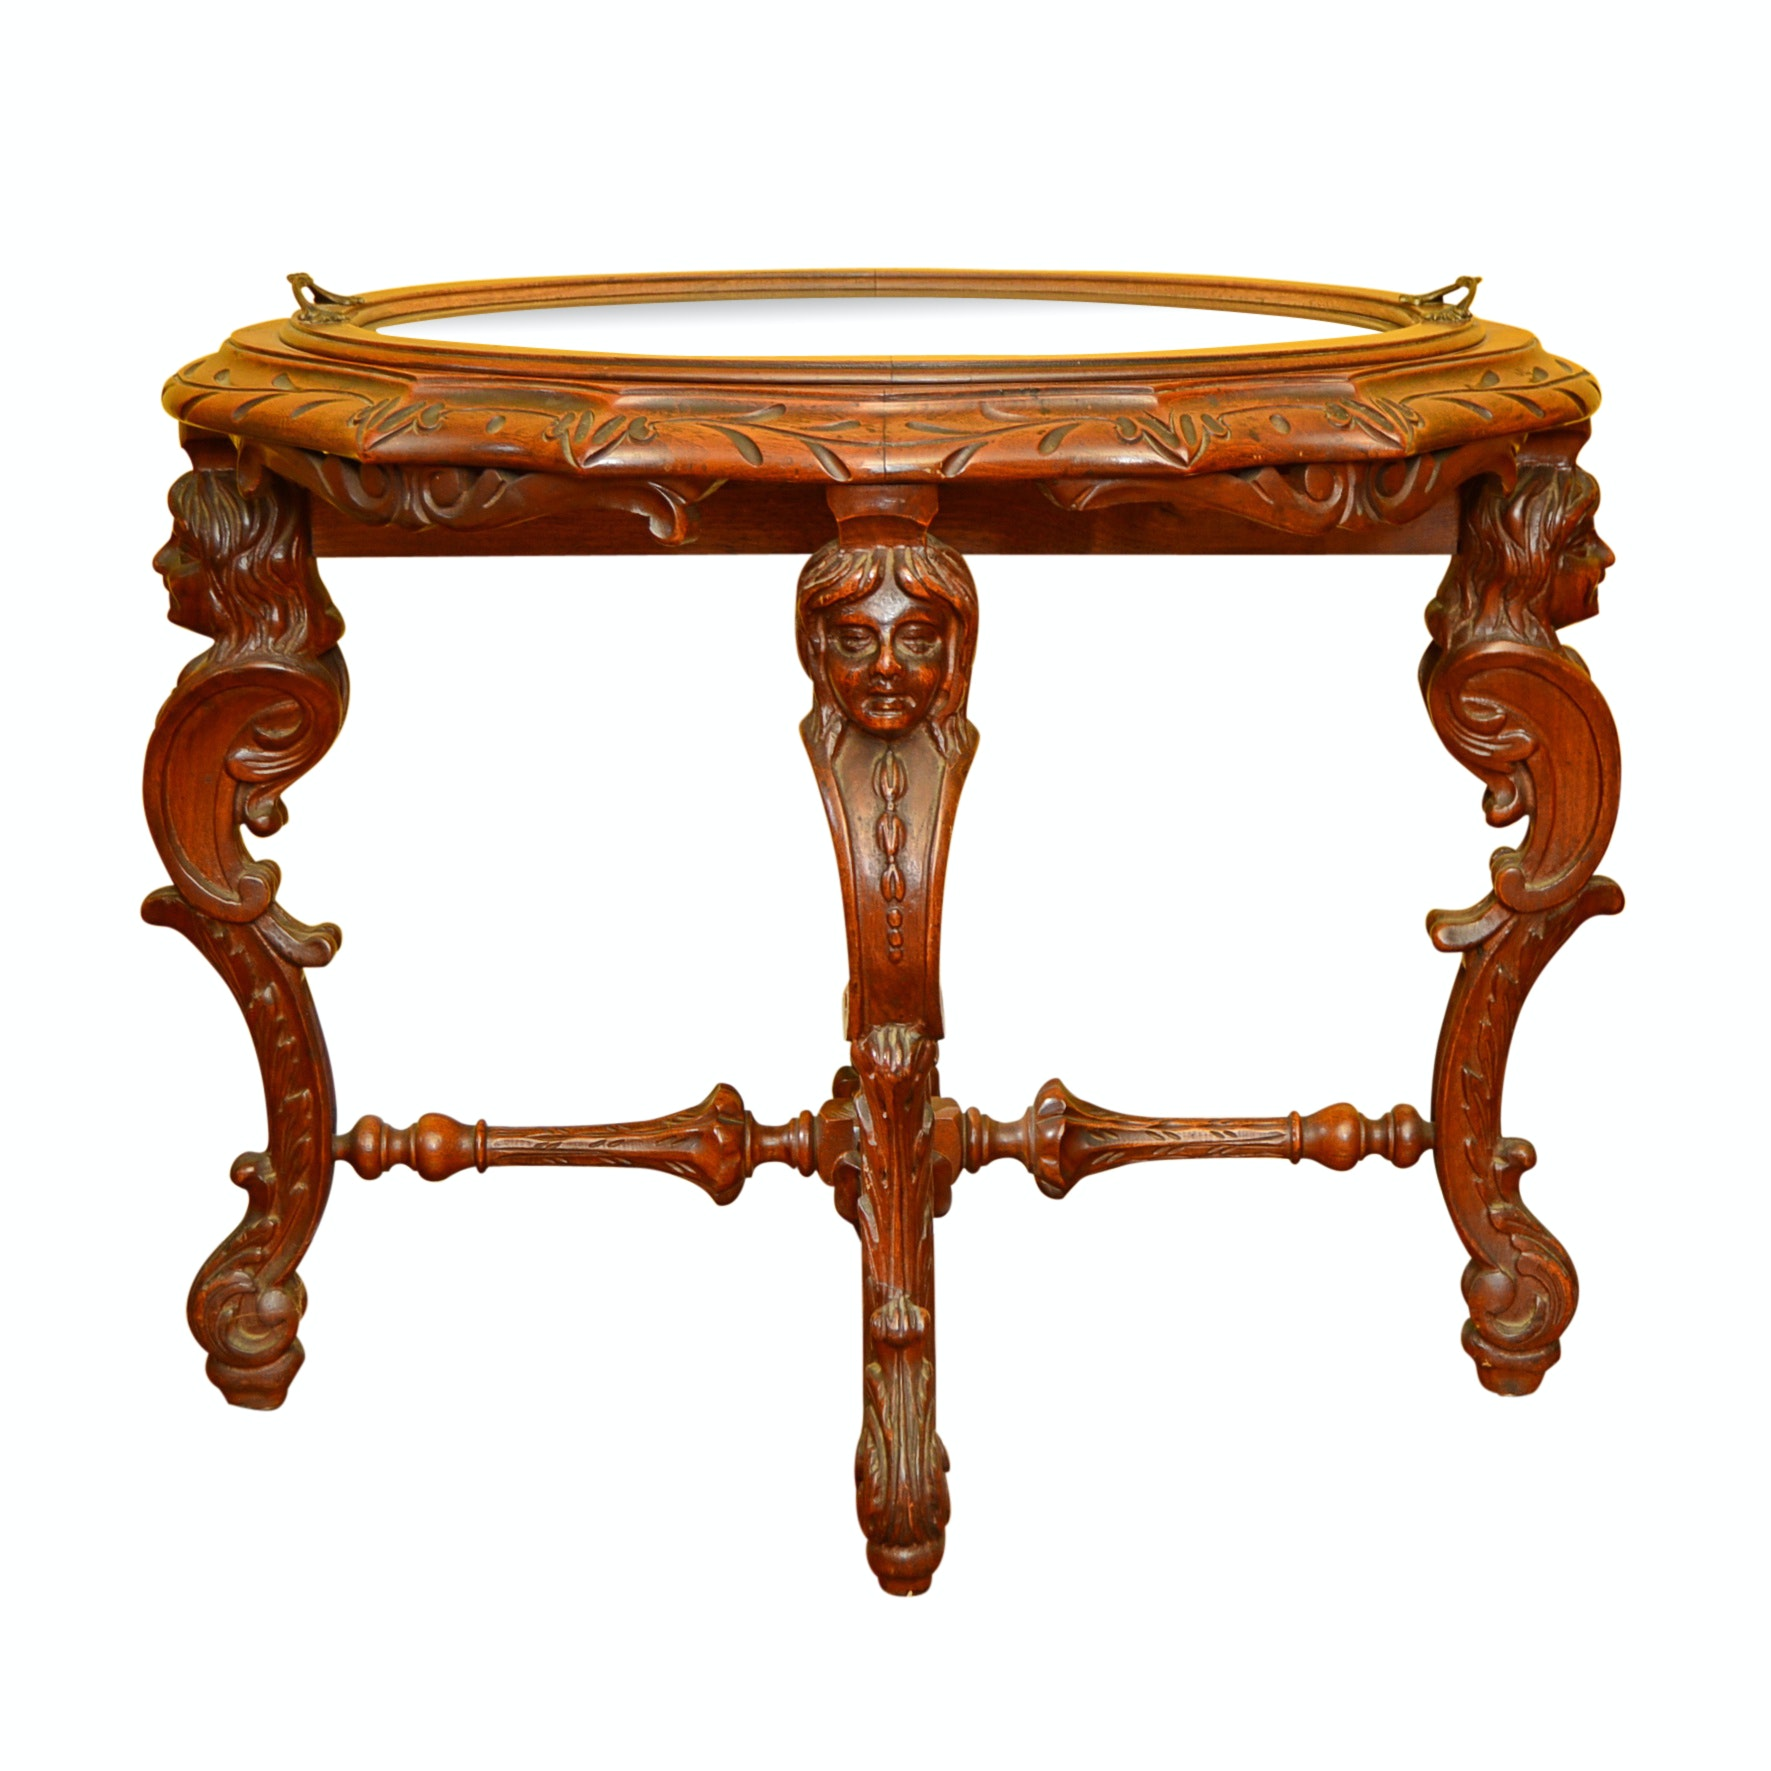 Vintage Neoclassic Style Accent Table with Caryatid Legs and Carved Top